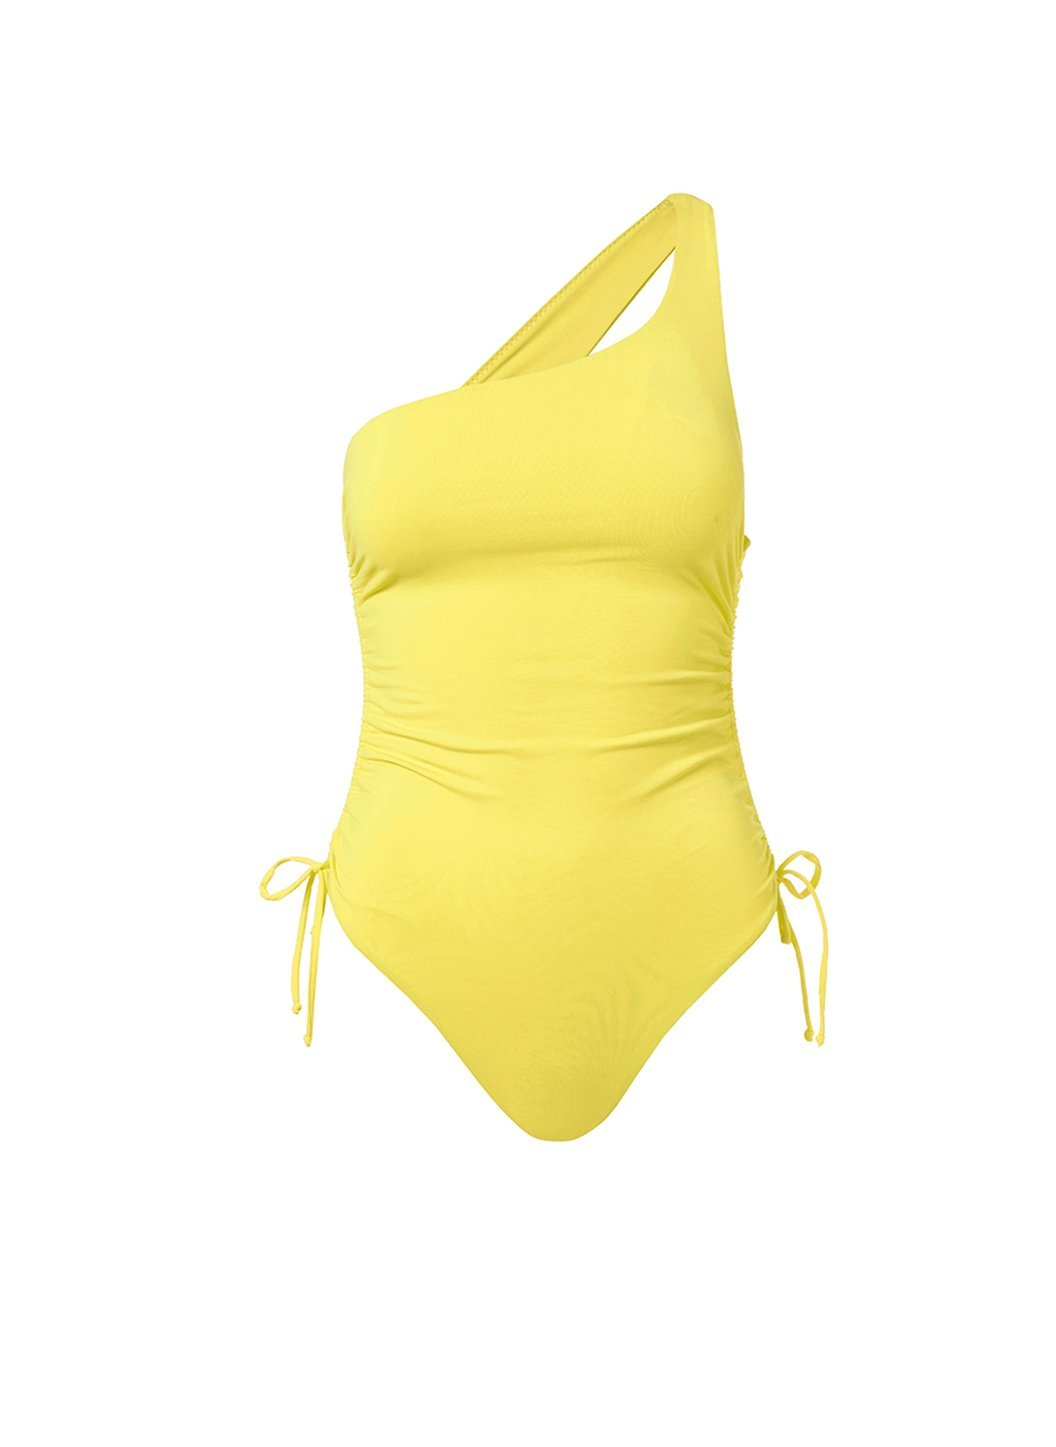 polynesia yellow oneshoulder ruched onepiece swimsuit 2019